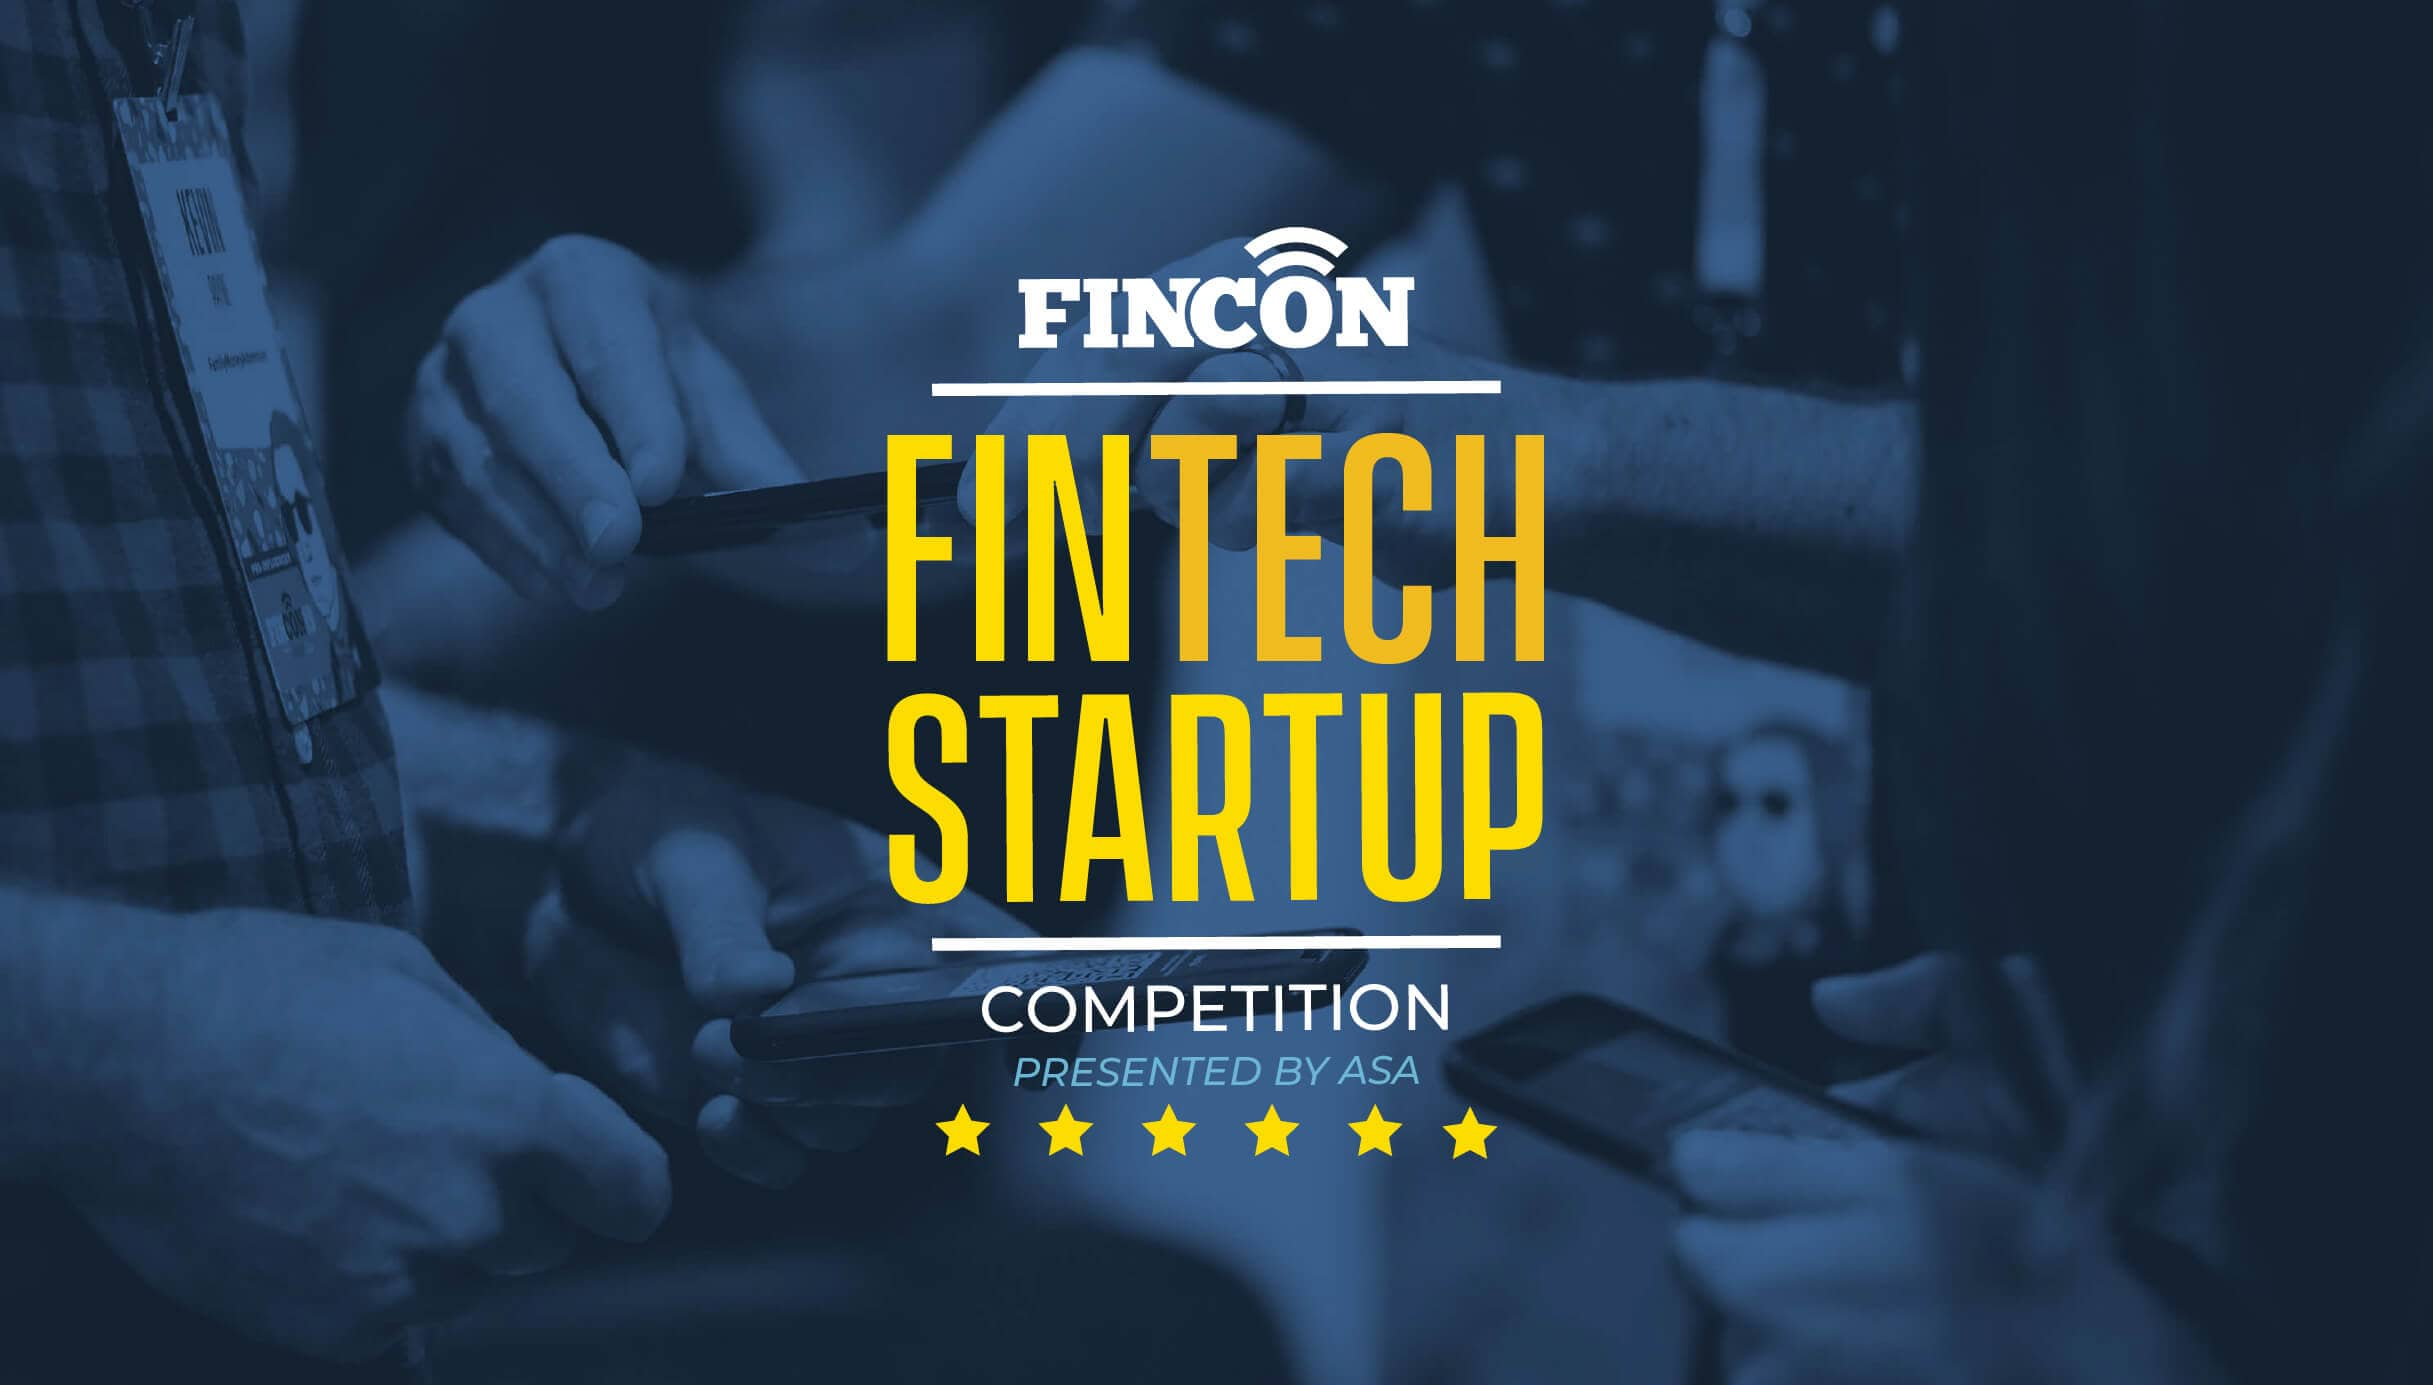 2021 FinCon Fintech Startup Competition